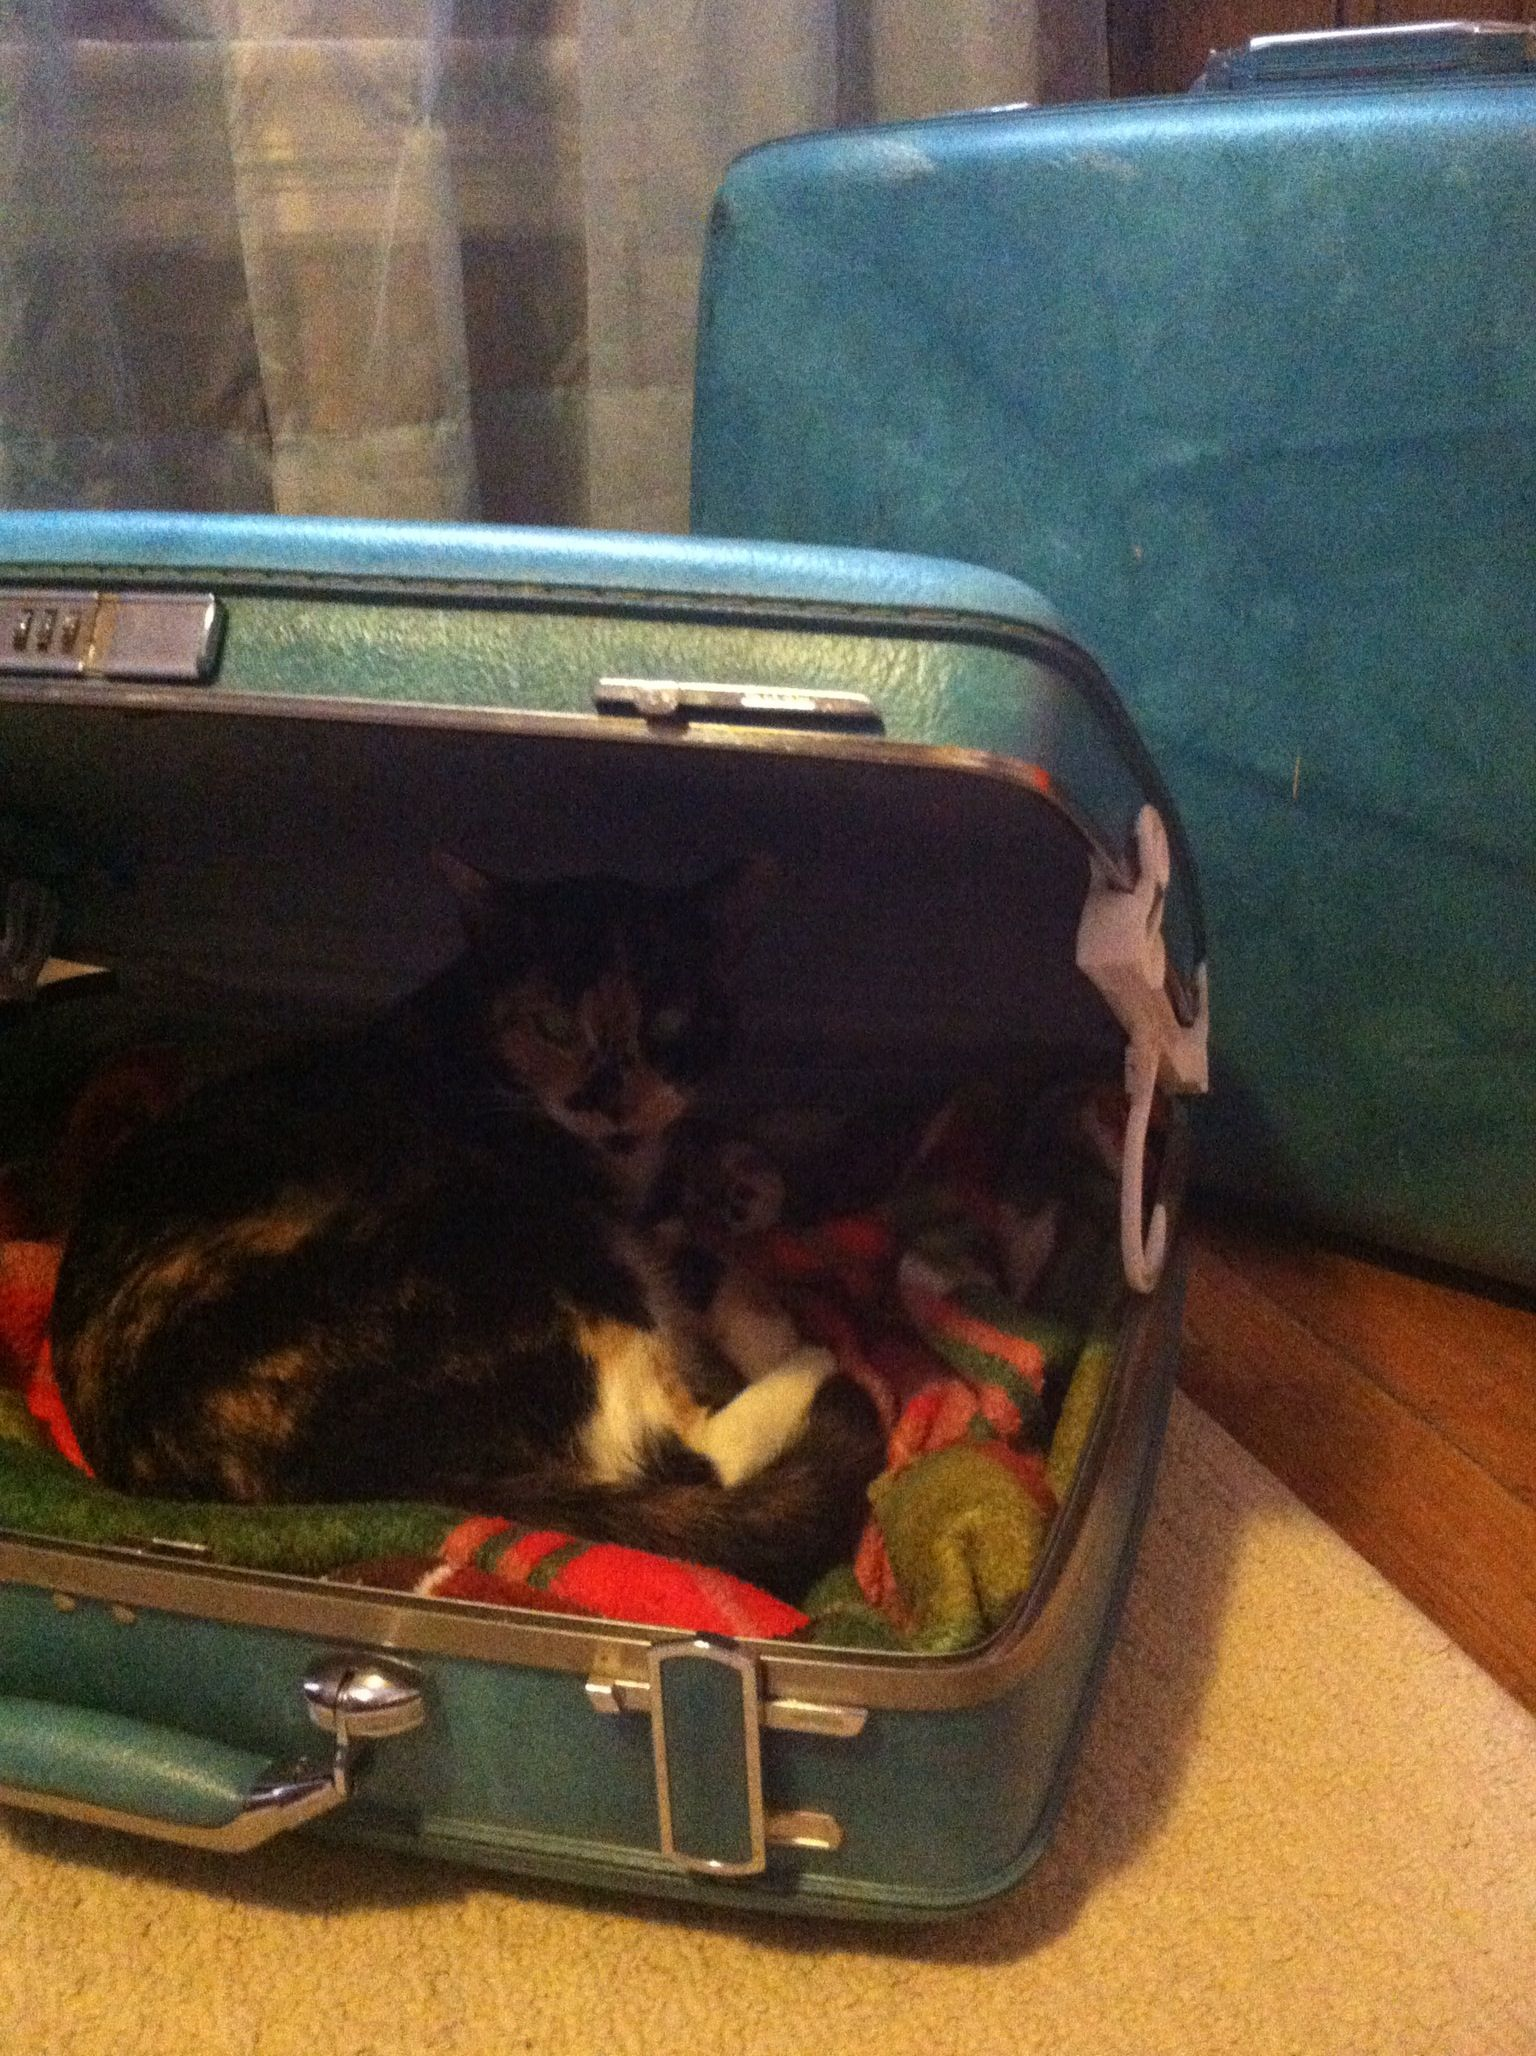 ..DIY pet bed out of a vintage suitcase and hangers. You could always spray paint the hangers to match the suitcase as well. (: ..